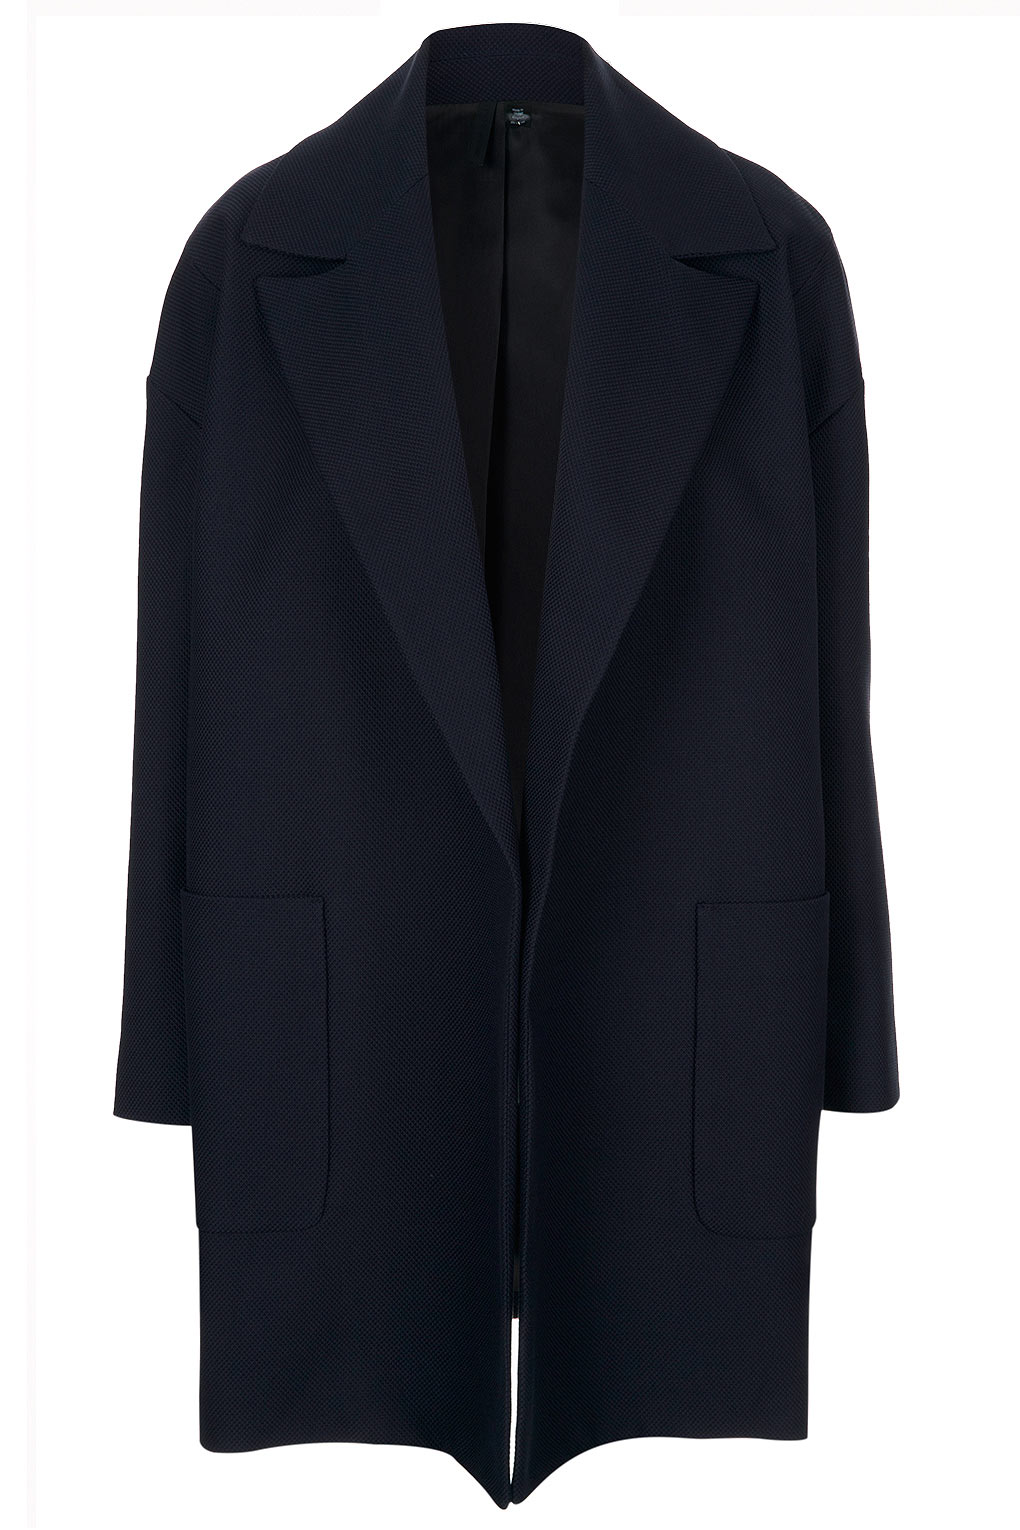 Topshop-boutique-oversized-textured-blazer